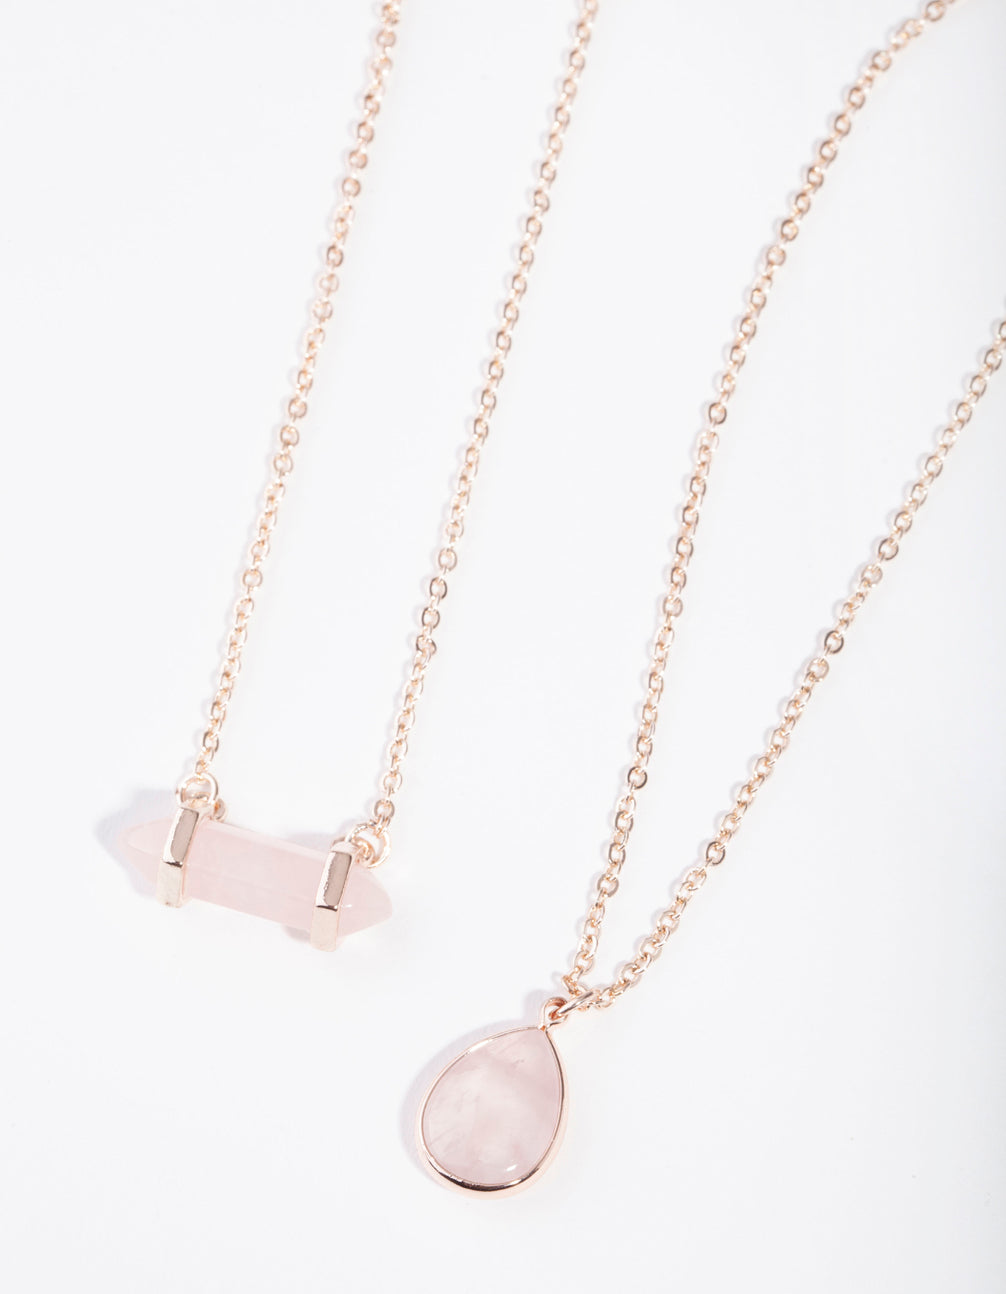 Rose Gold Double Layered Rose Quartz Necklace